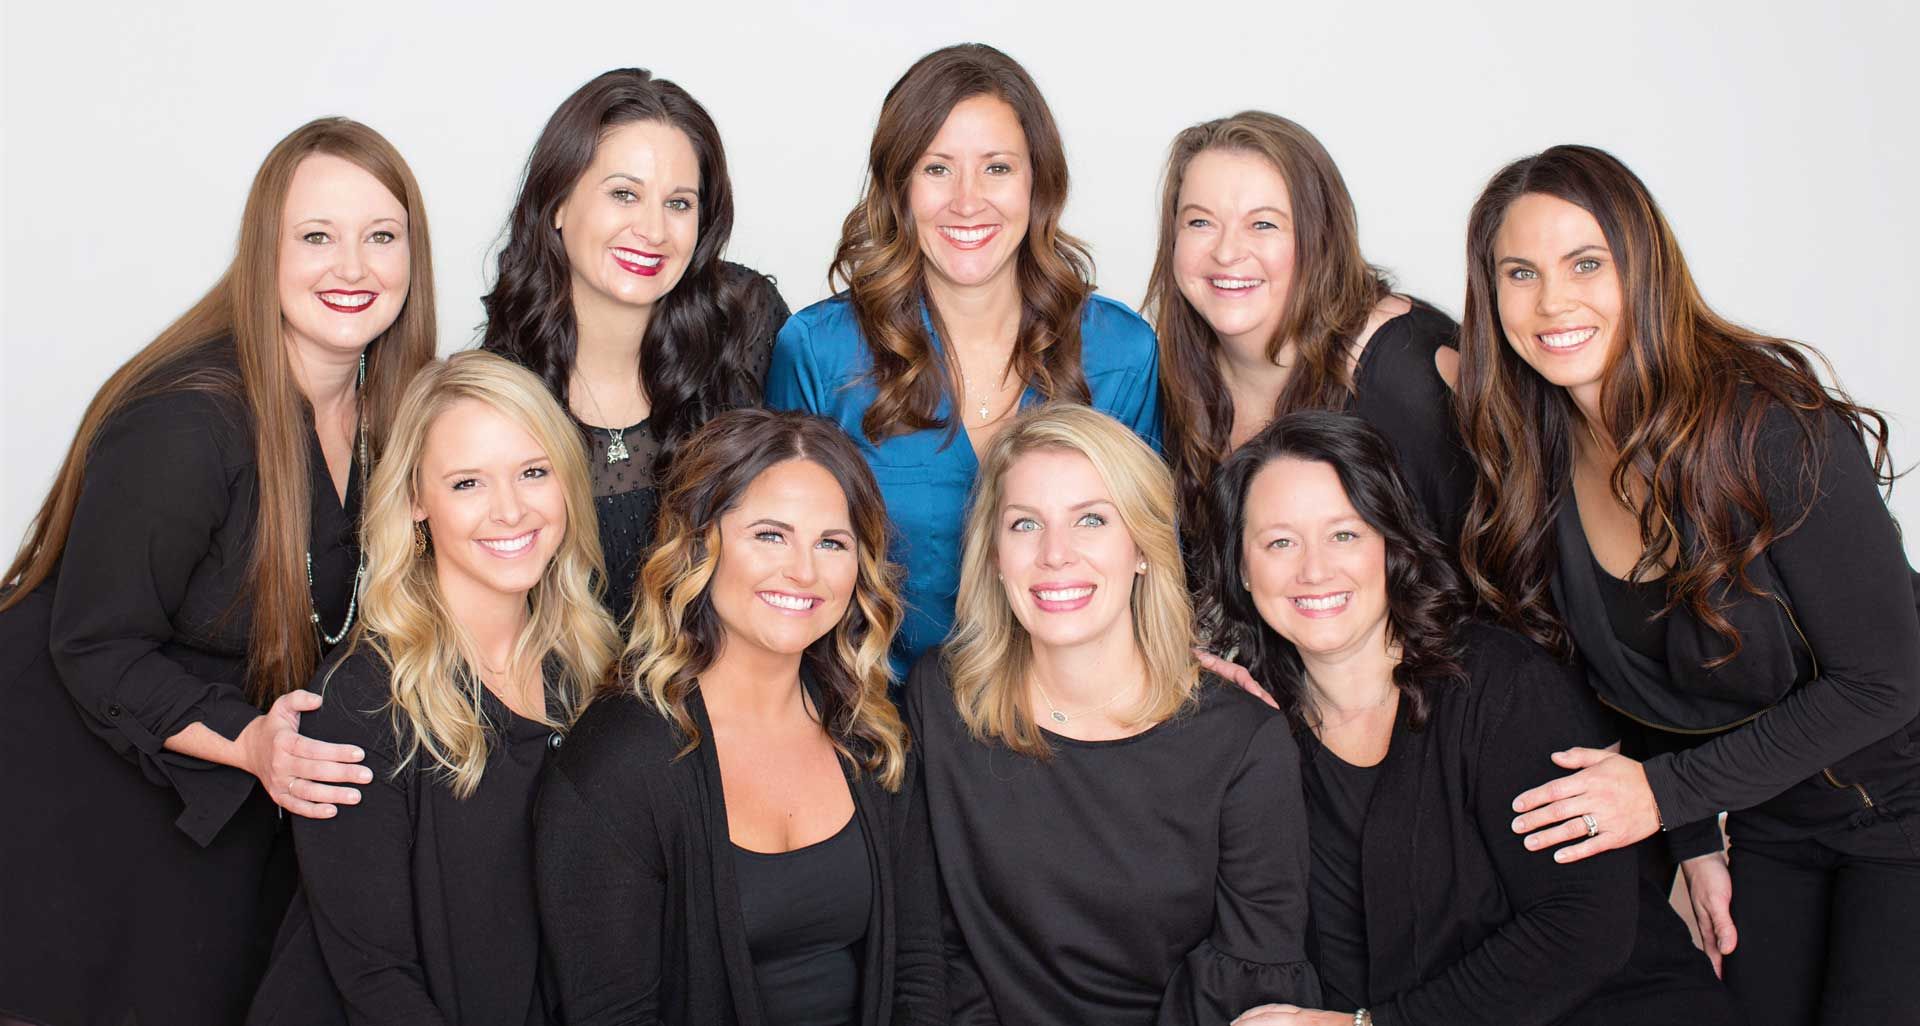 About Our Fargo Dental Office